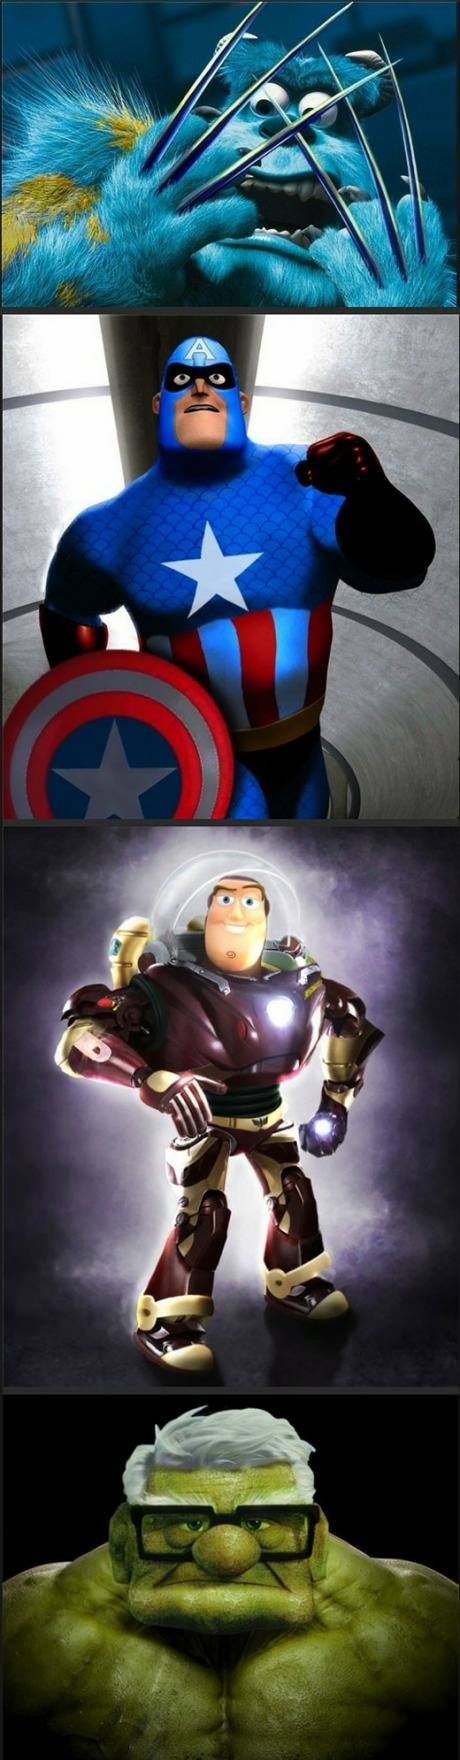 Pixar vs. Marvel